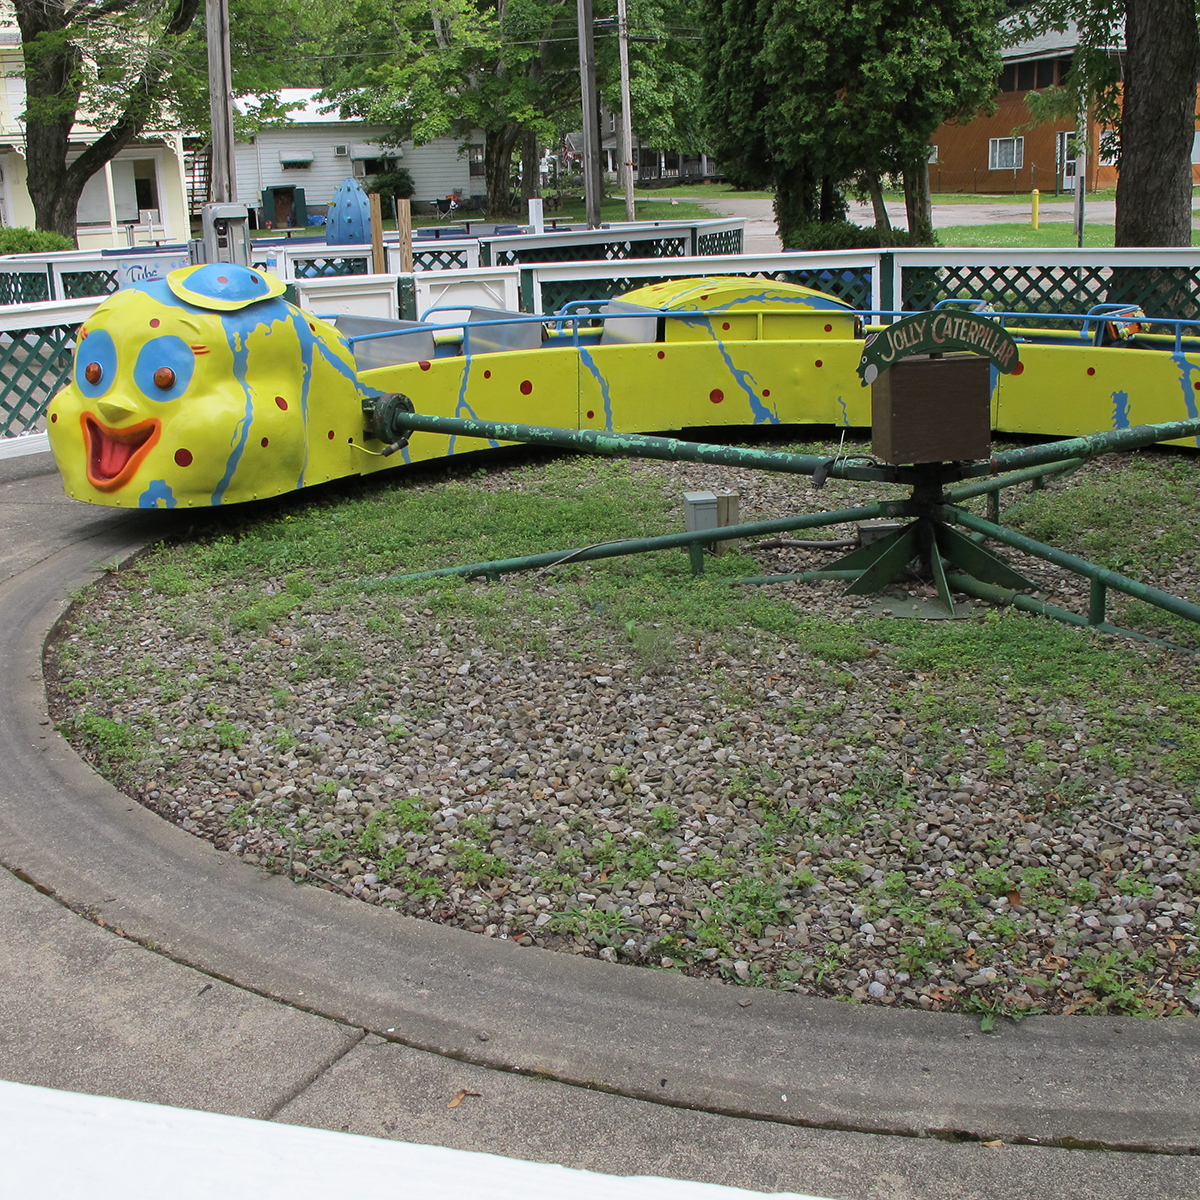 West View Park's kiddie land ride, the Jolly Caterpillar, located today at Conneaut Lake Park in northwestern Pa., 2017. | Heinz History Center